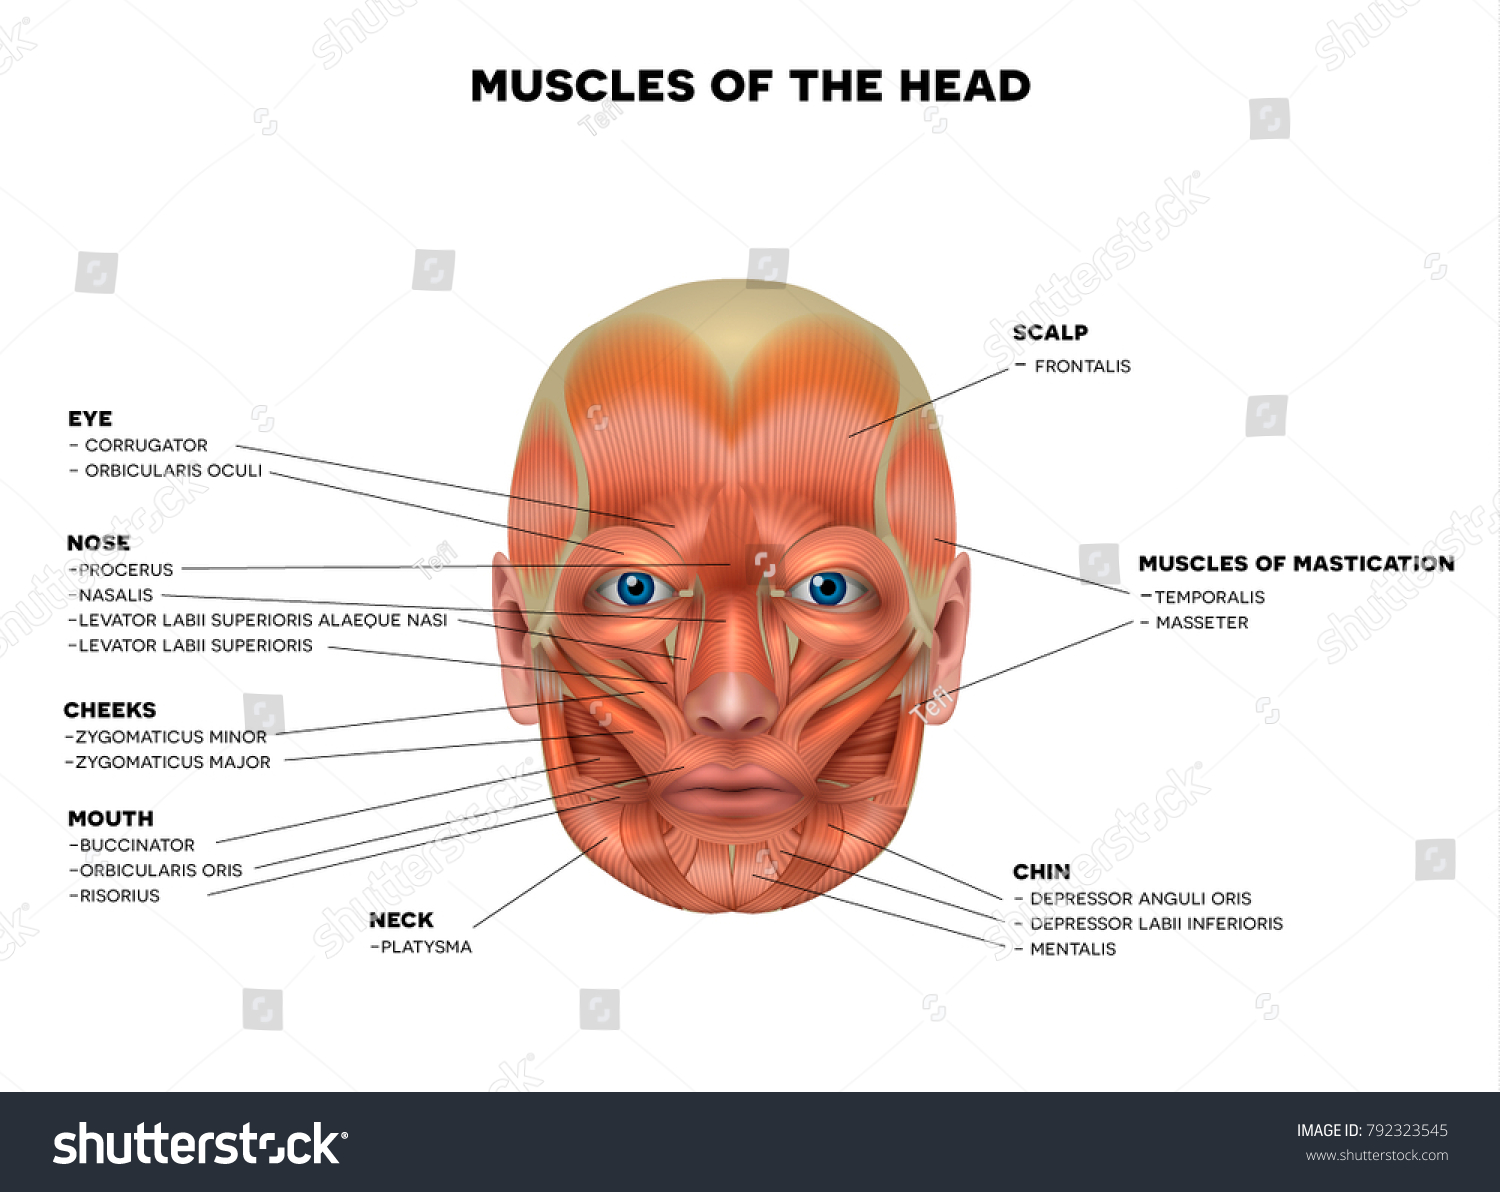 Muscles Face Name Each Muscle Detailed Stock Illustration 792323545 ...